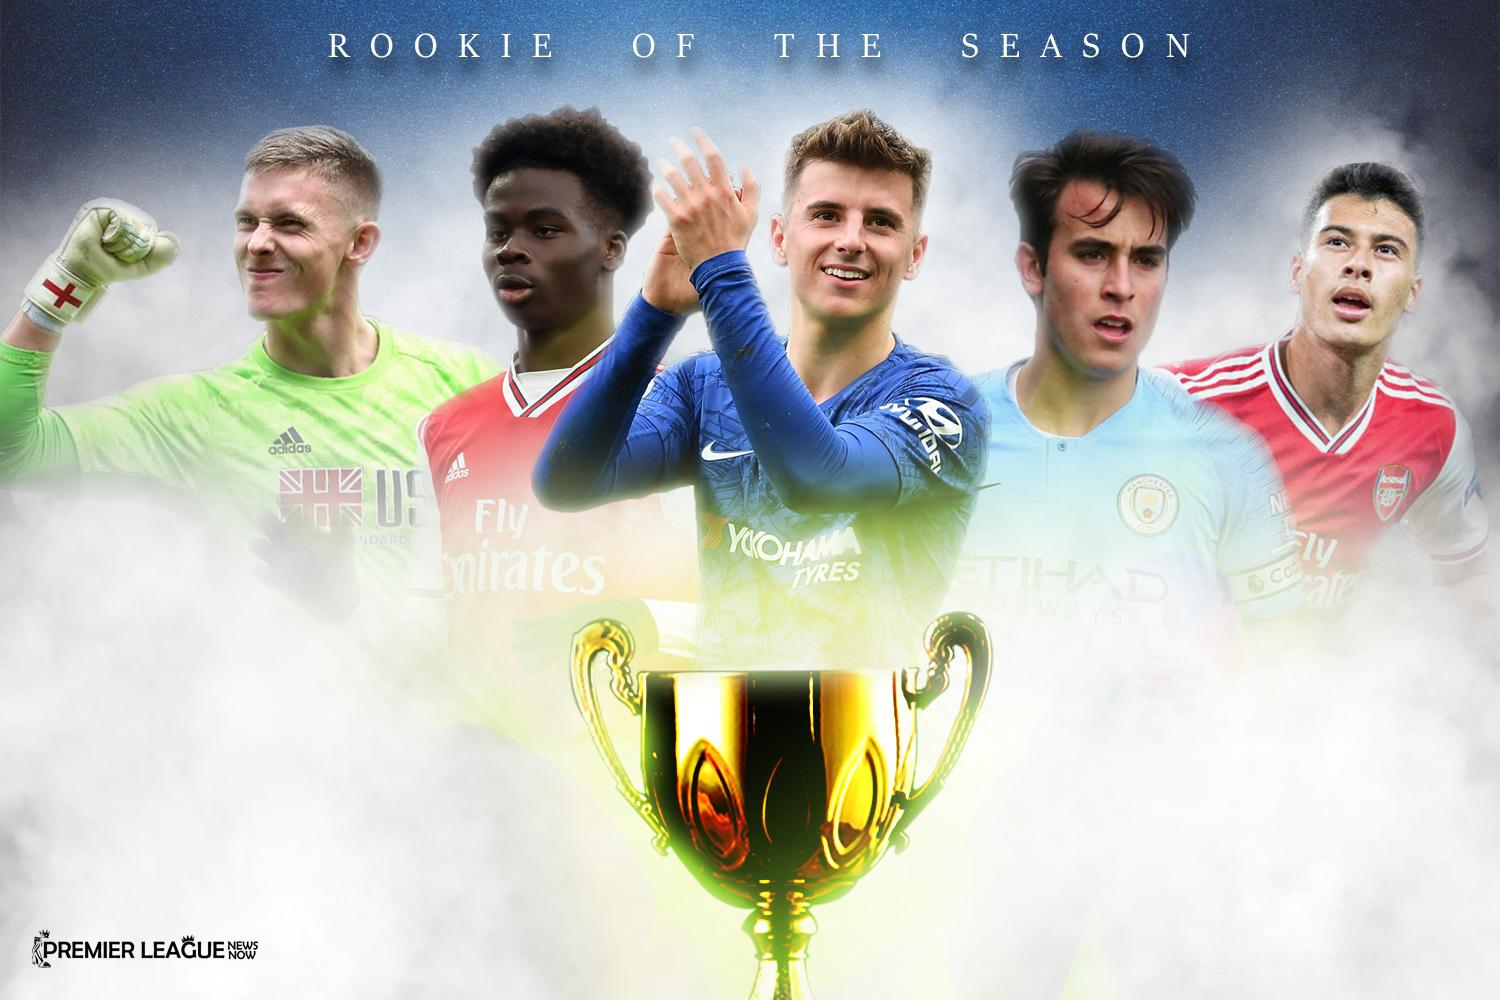 Rookie_of_the_Season_Premier_league_2019_20